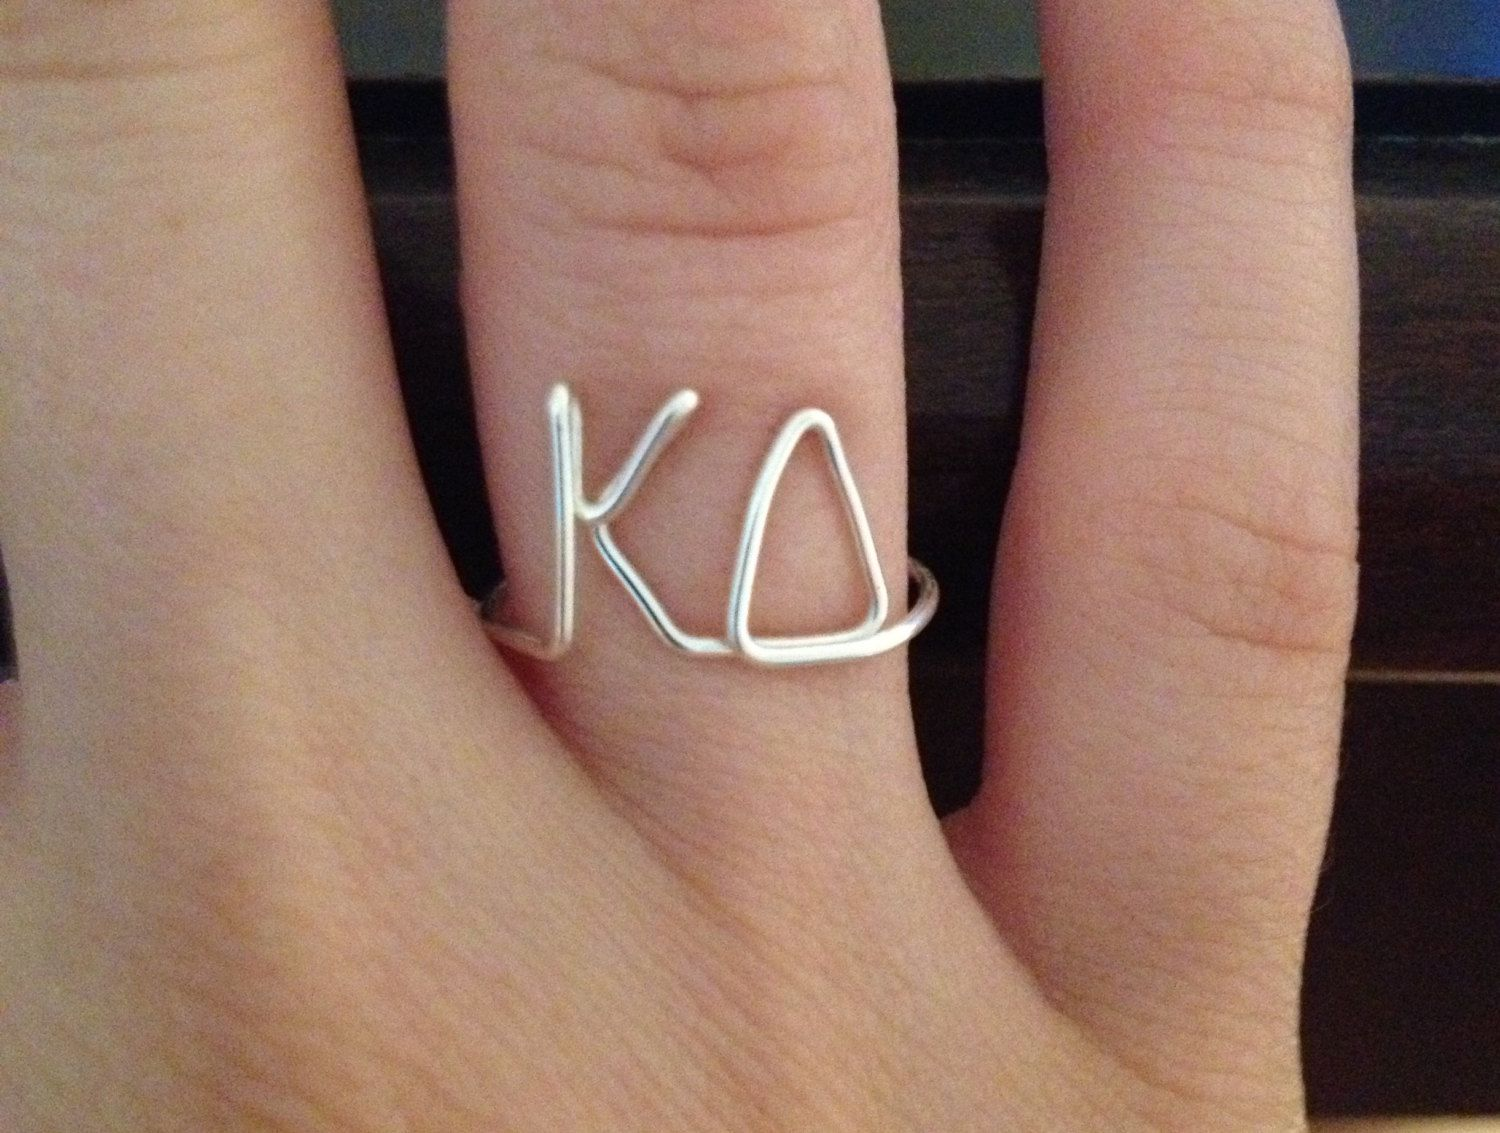 sorority wire ring kappa delta kd greek letters fraternity free shipping 1200 via etsy